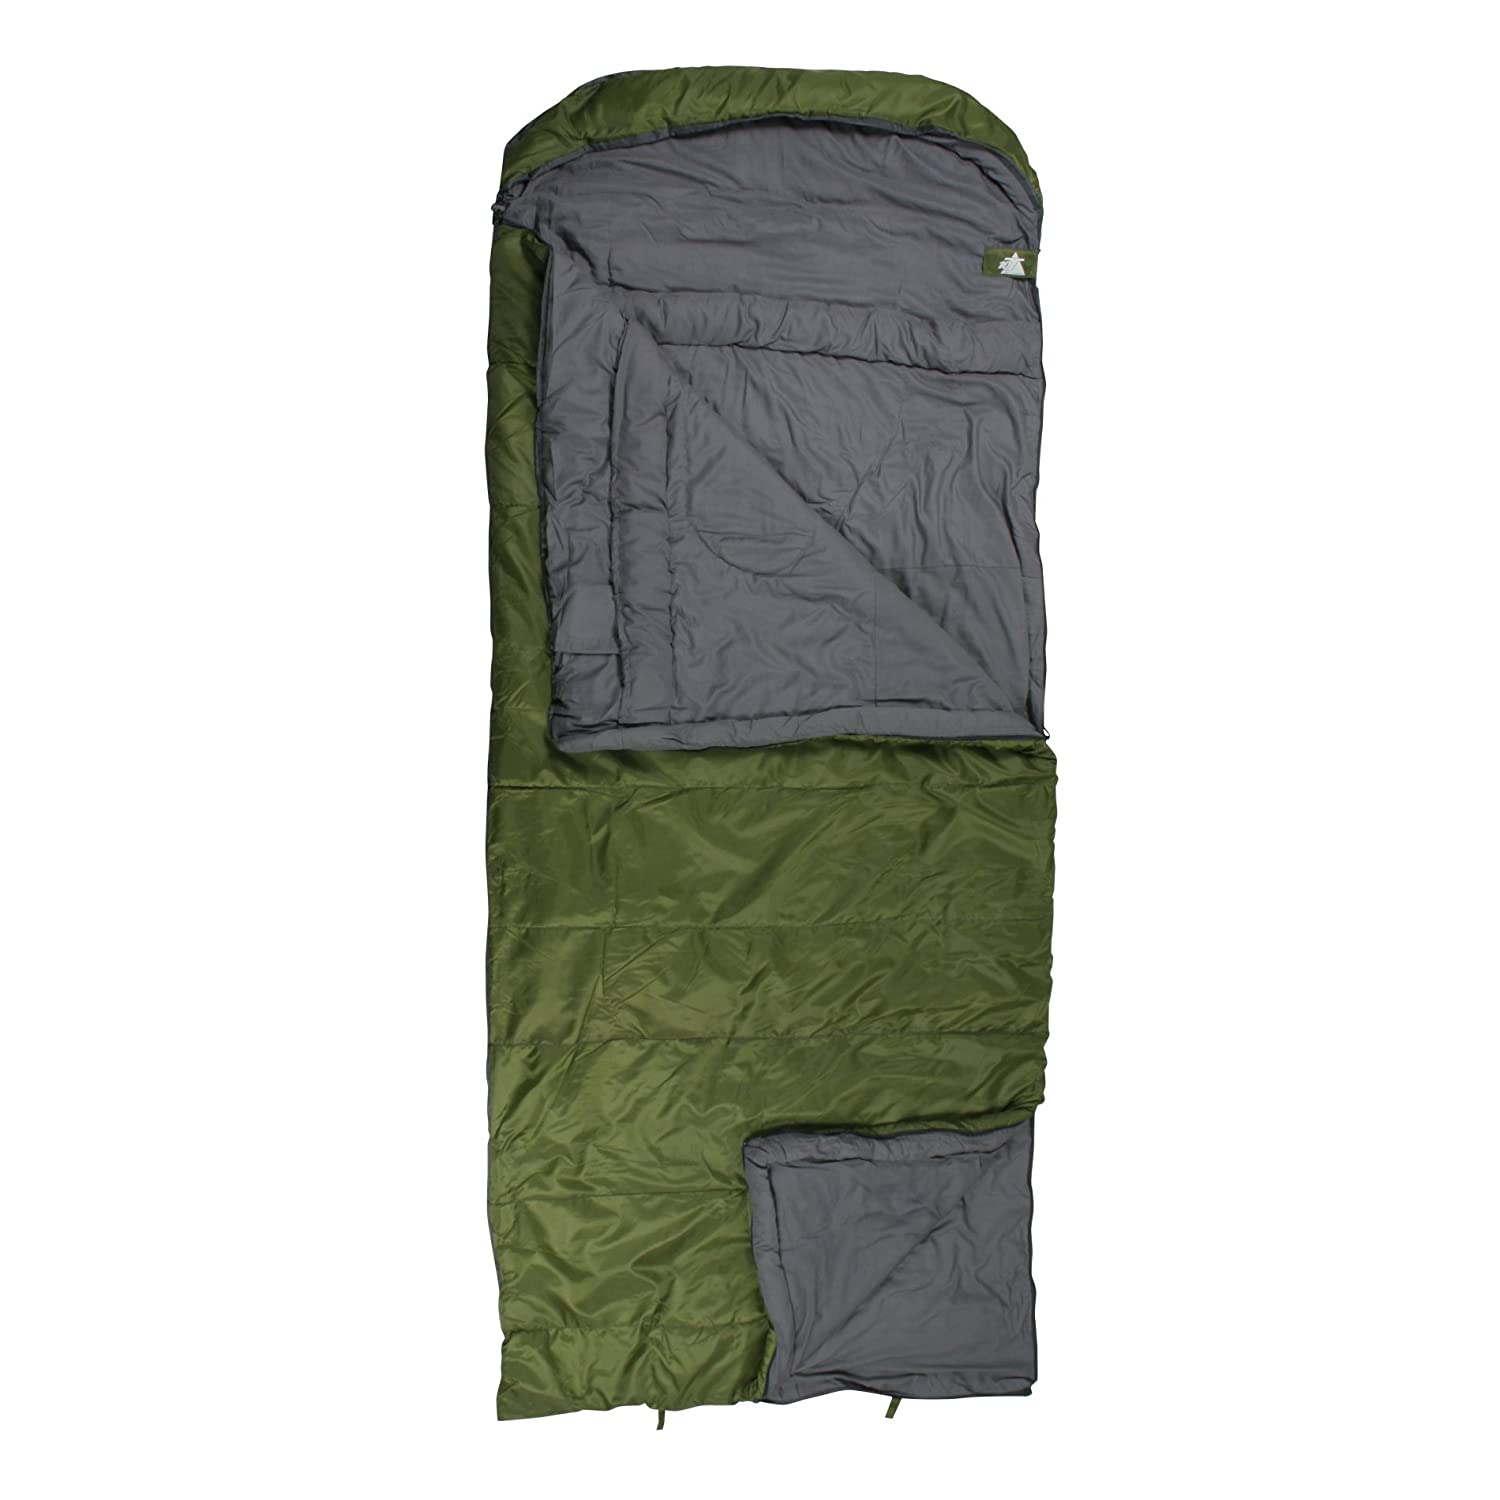 Amazon.com : OUTDOOR EQUIPMENT 10T 1062764054 Rectangular Sleeping Bag 1 Person Kenai Green/Grey by 10T : Sports & Outdoors